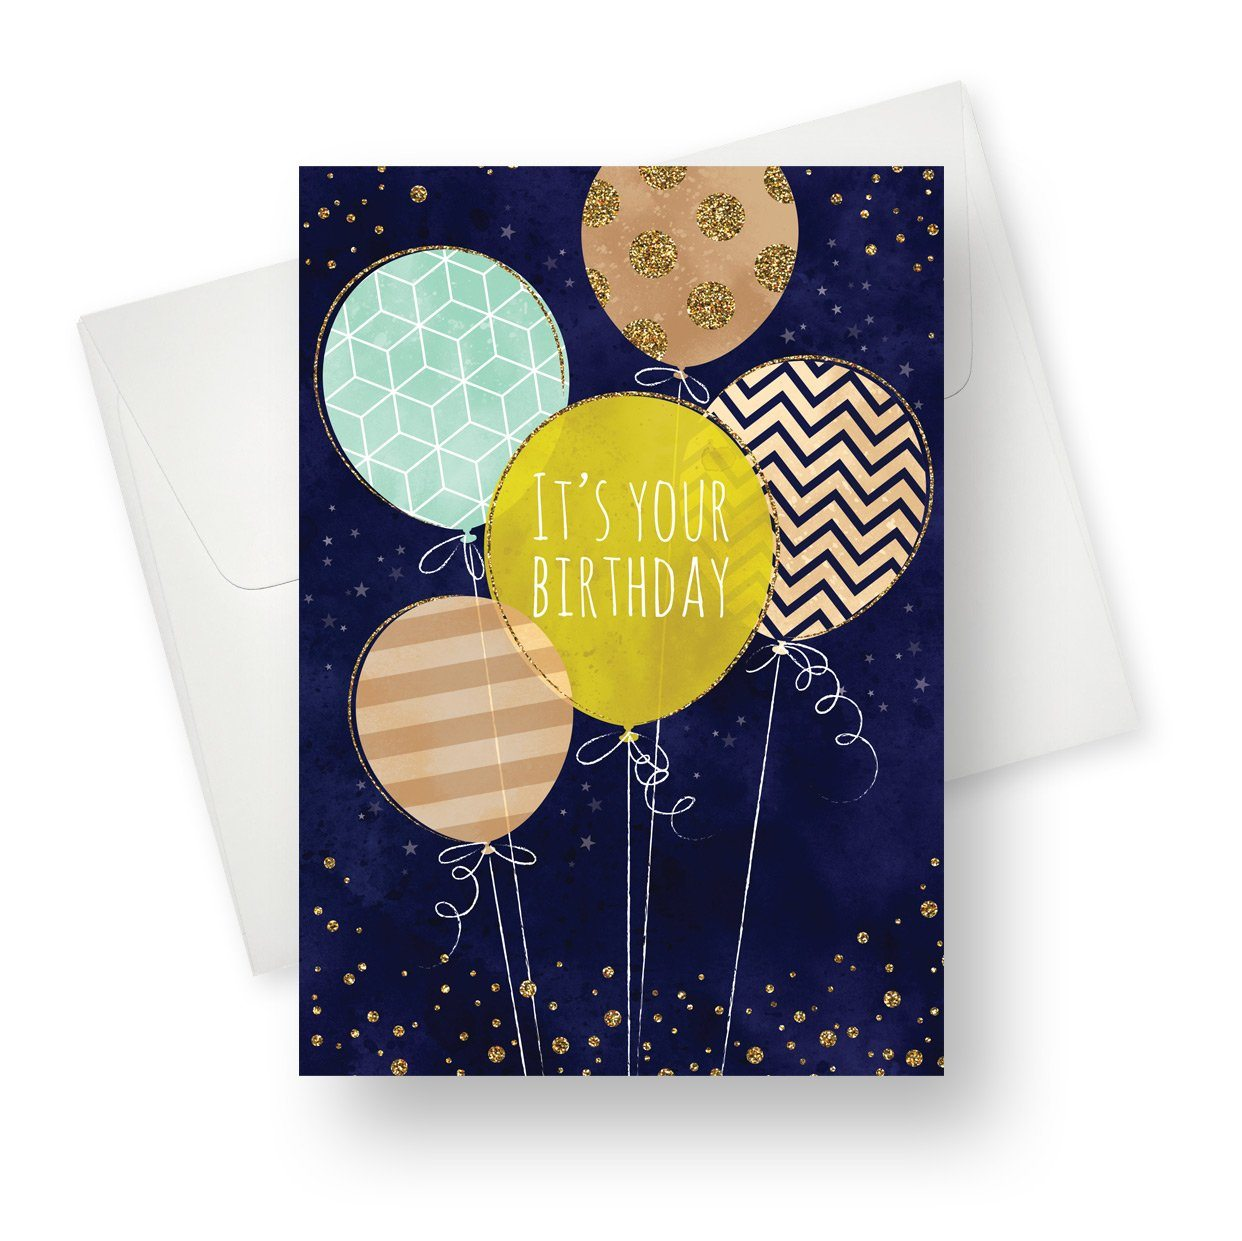 'Let's Celebrate' Birthday Card - Northern Cards